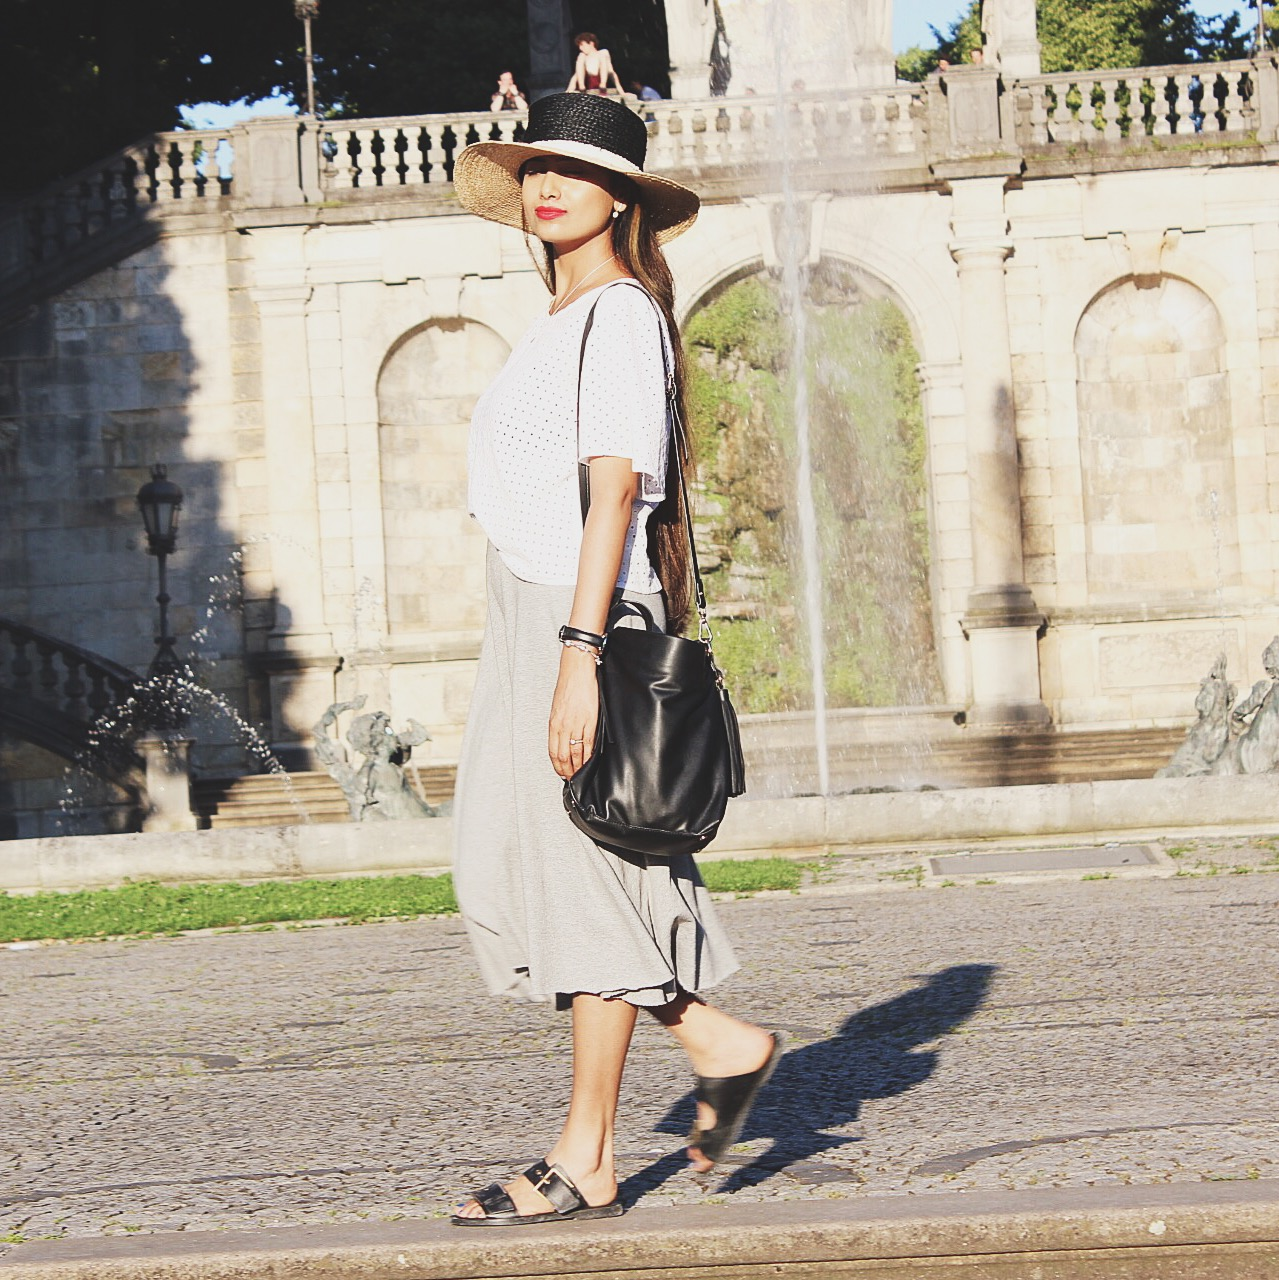 comfy chic, cool color palette, effortless chic, match jewelry, neutral outfit, parisian chic, popular silver jewelry, dress for exploring, dress while traveling, dress sightseeing, 2016 street style, 2016 neutral outfit, london street style, style hat, fresh outfit, style neutrals, top indian blogger, uk blogger, white and grey, style slides, classic outfit idea